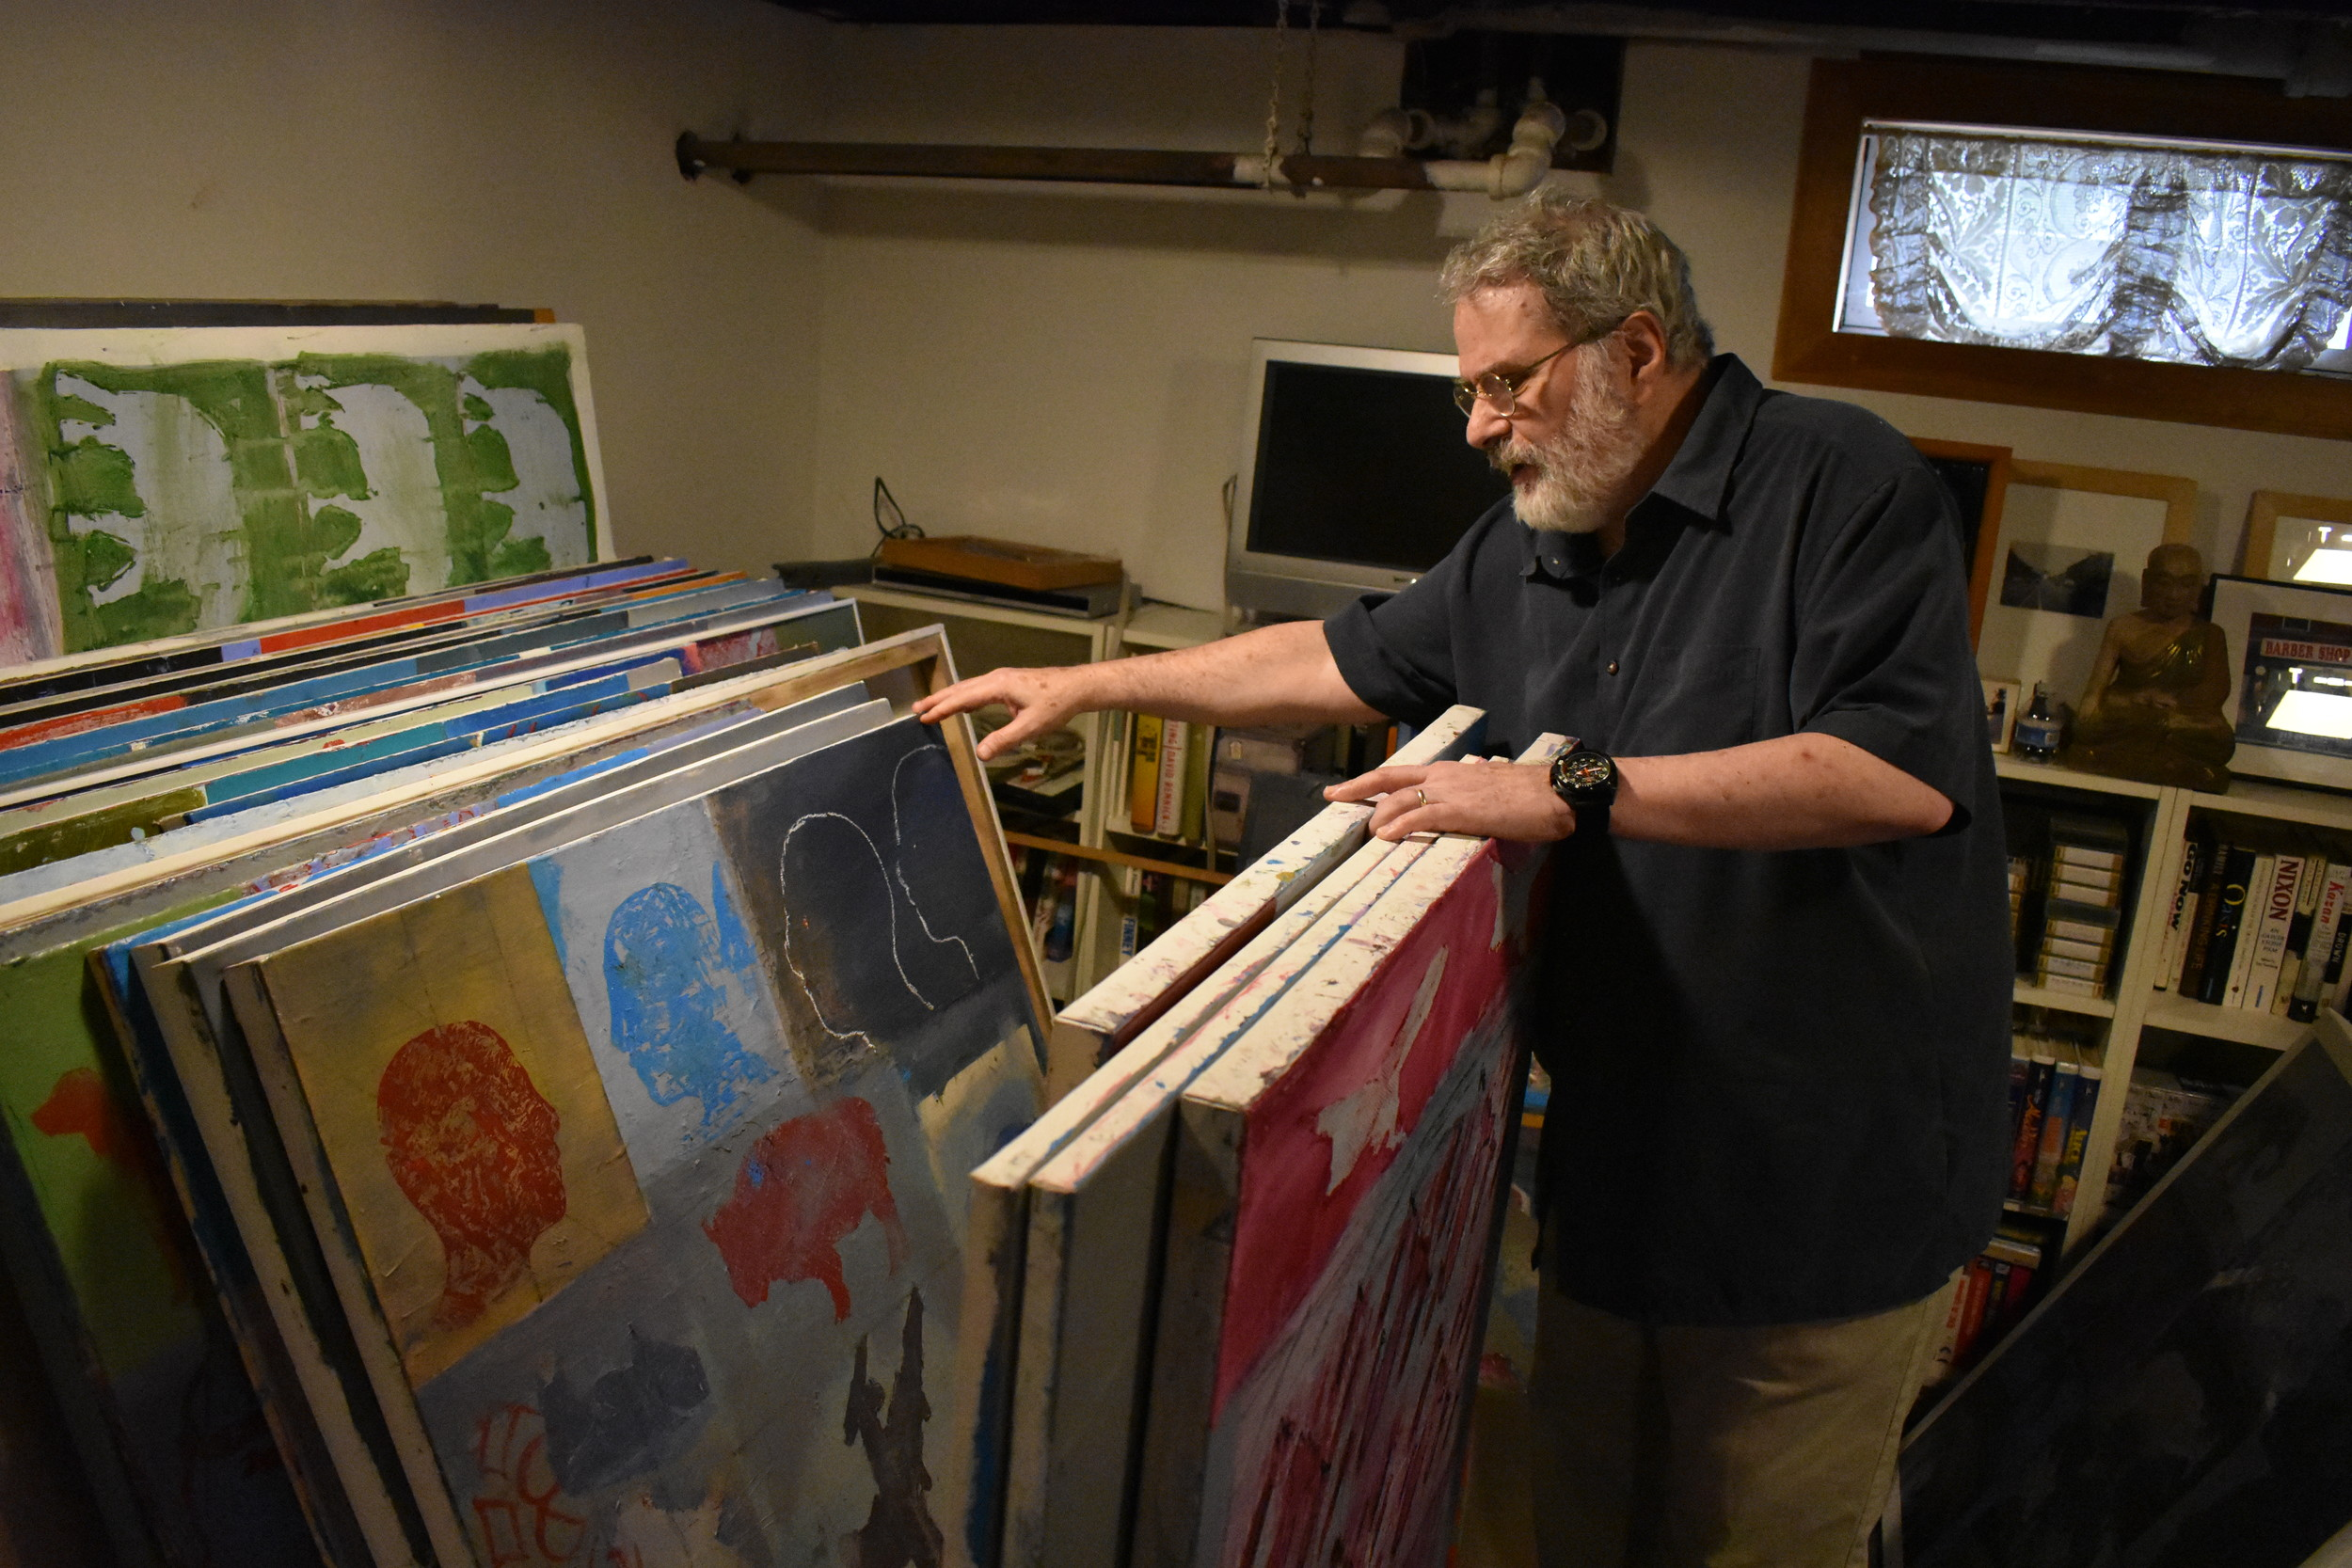 The Vietnam Veteran sifted through the many works in his basement.